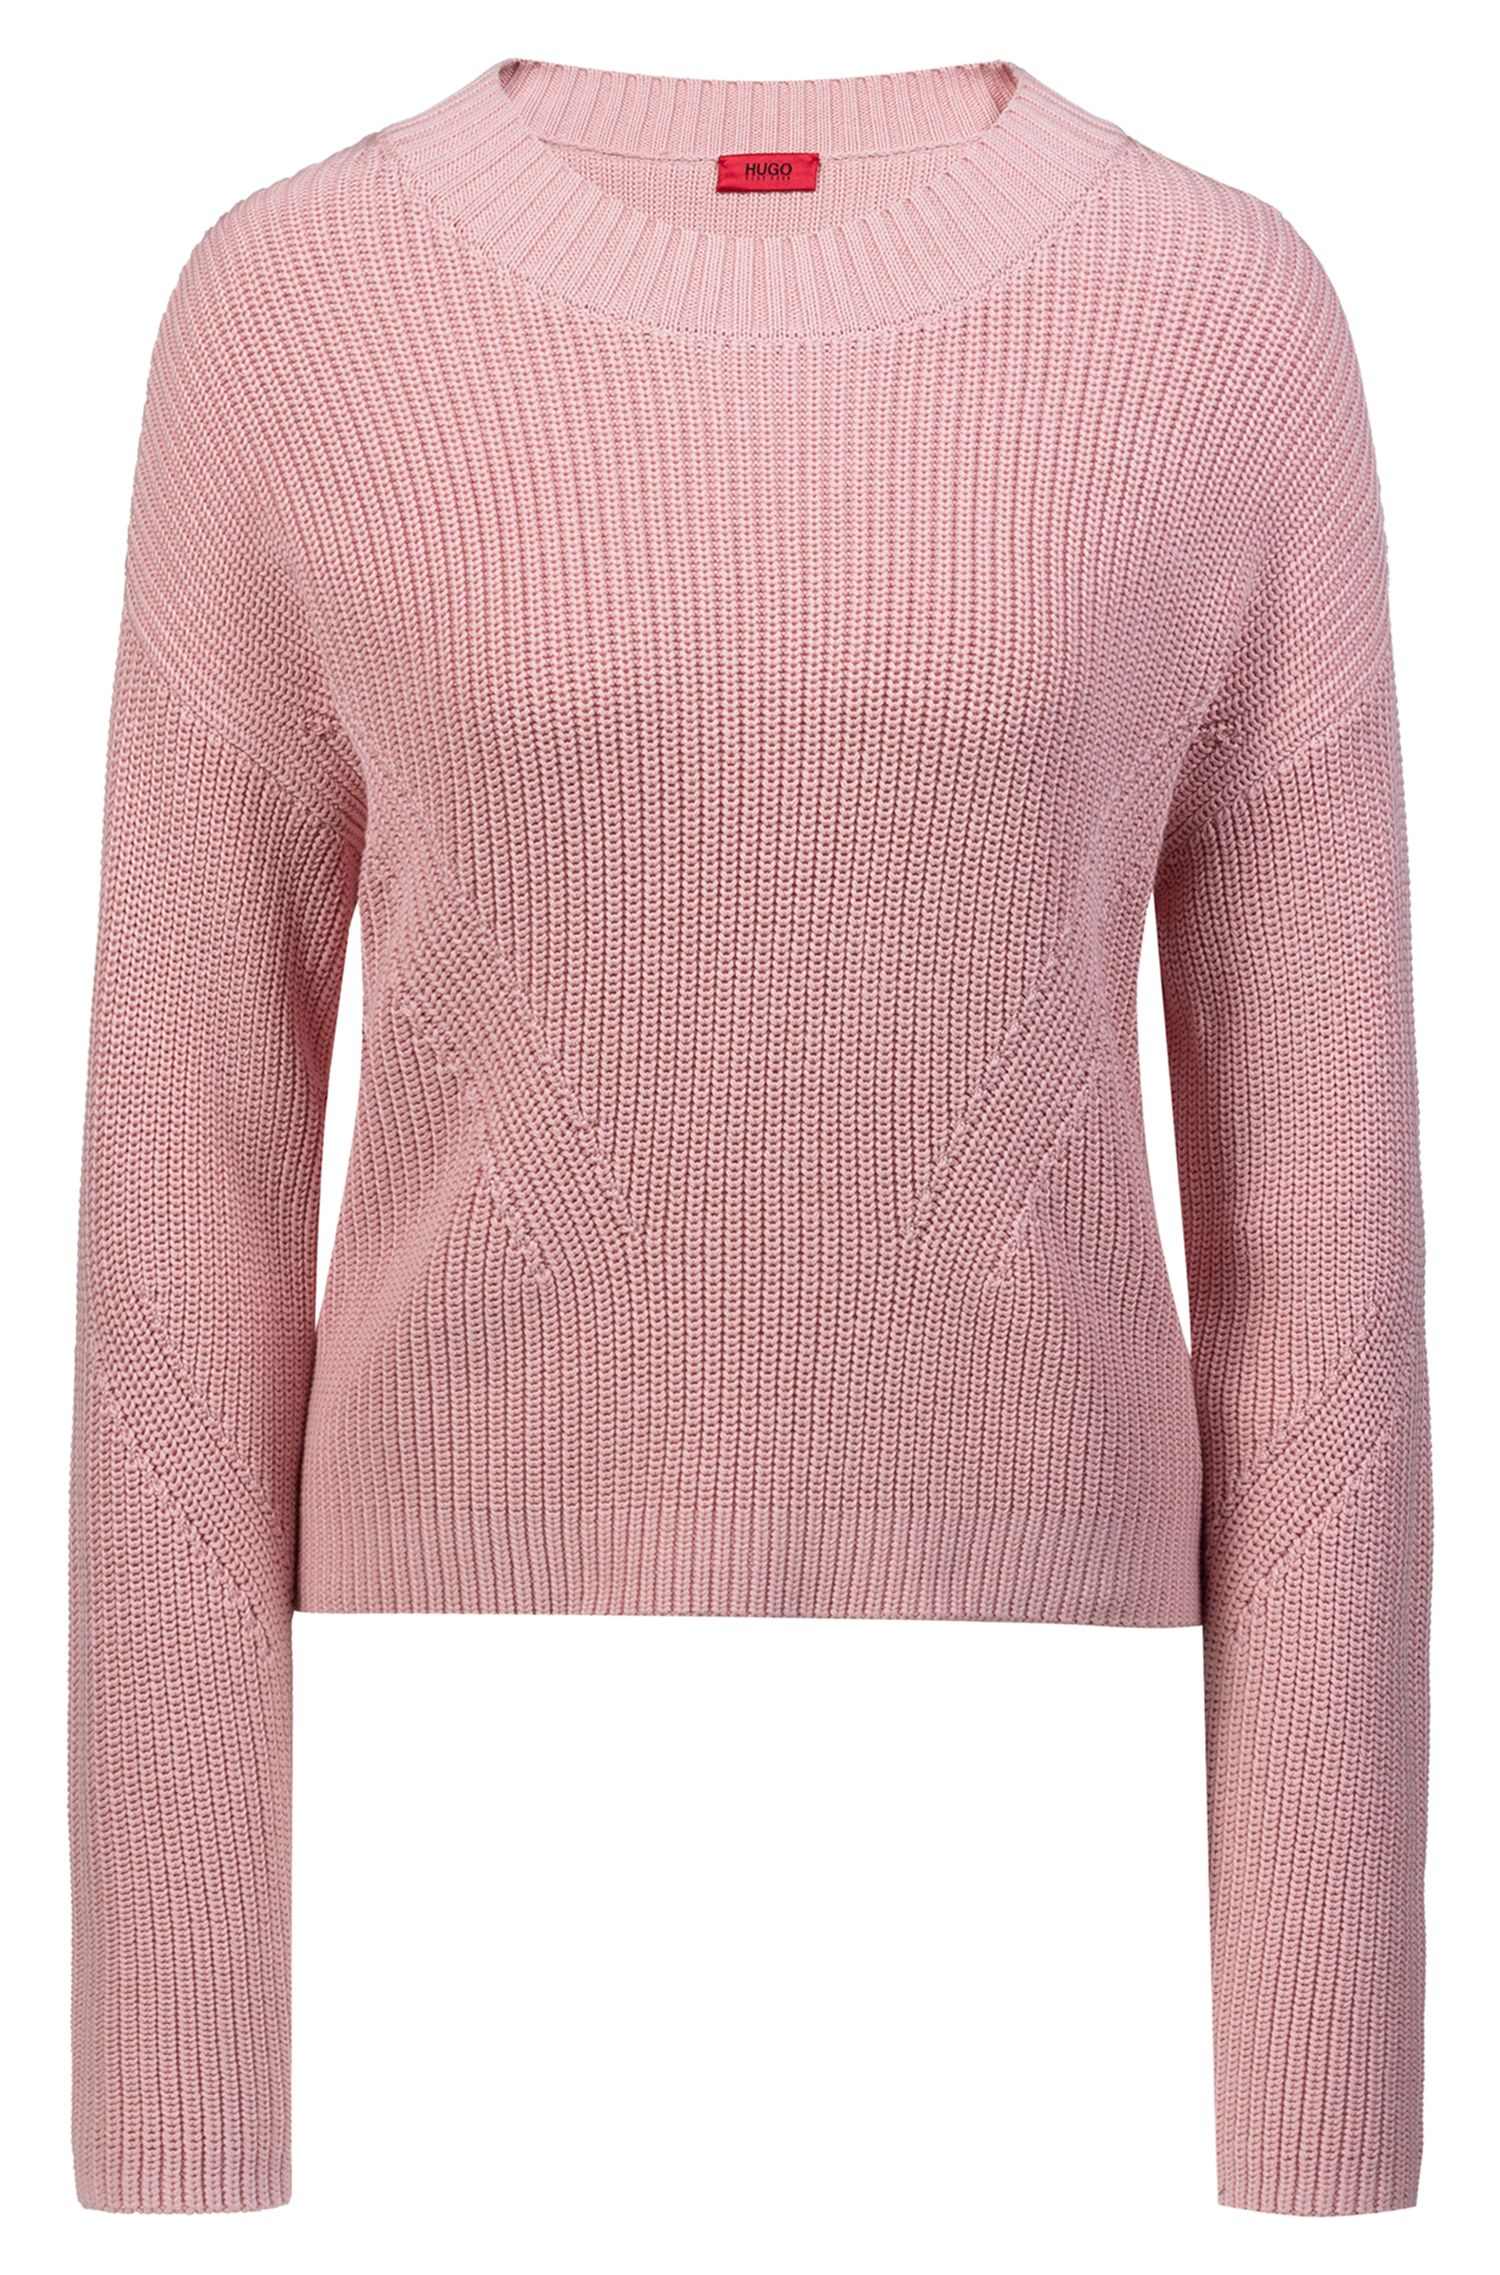 Relaxed-fit cropped sweater with contrast side-seam tape, Pink